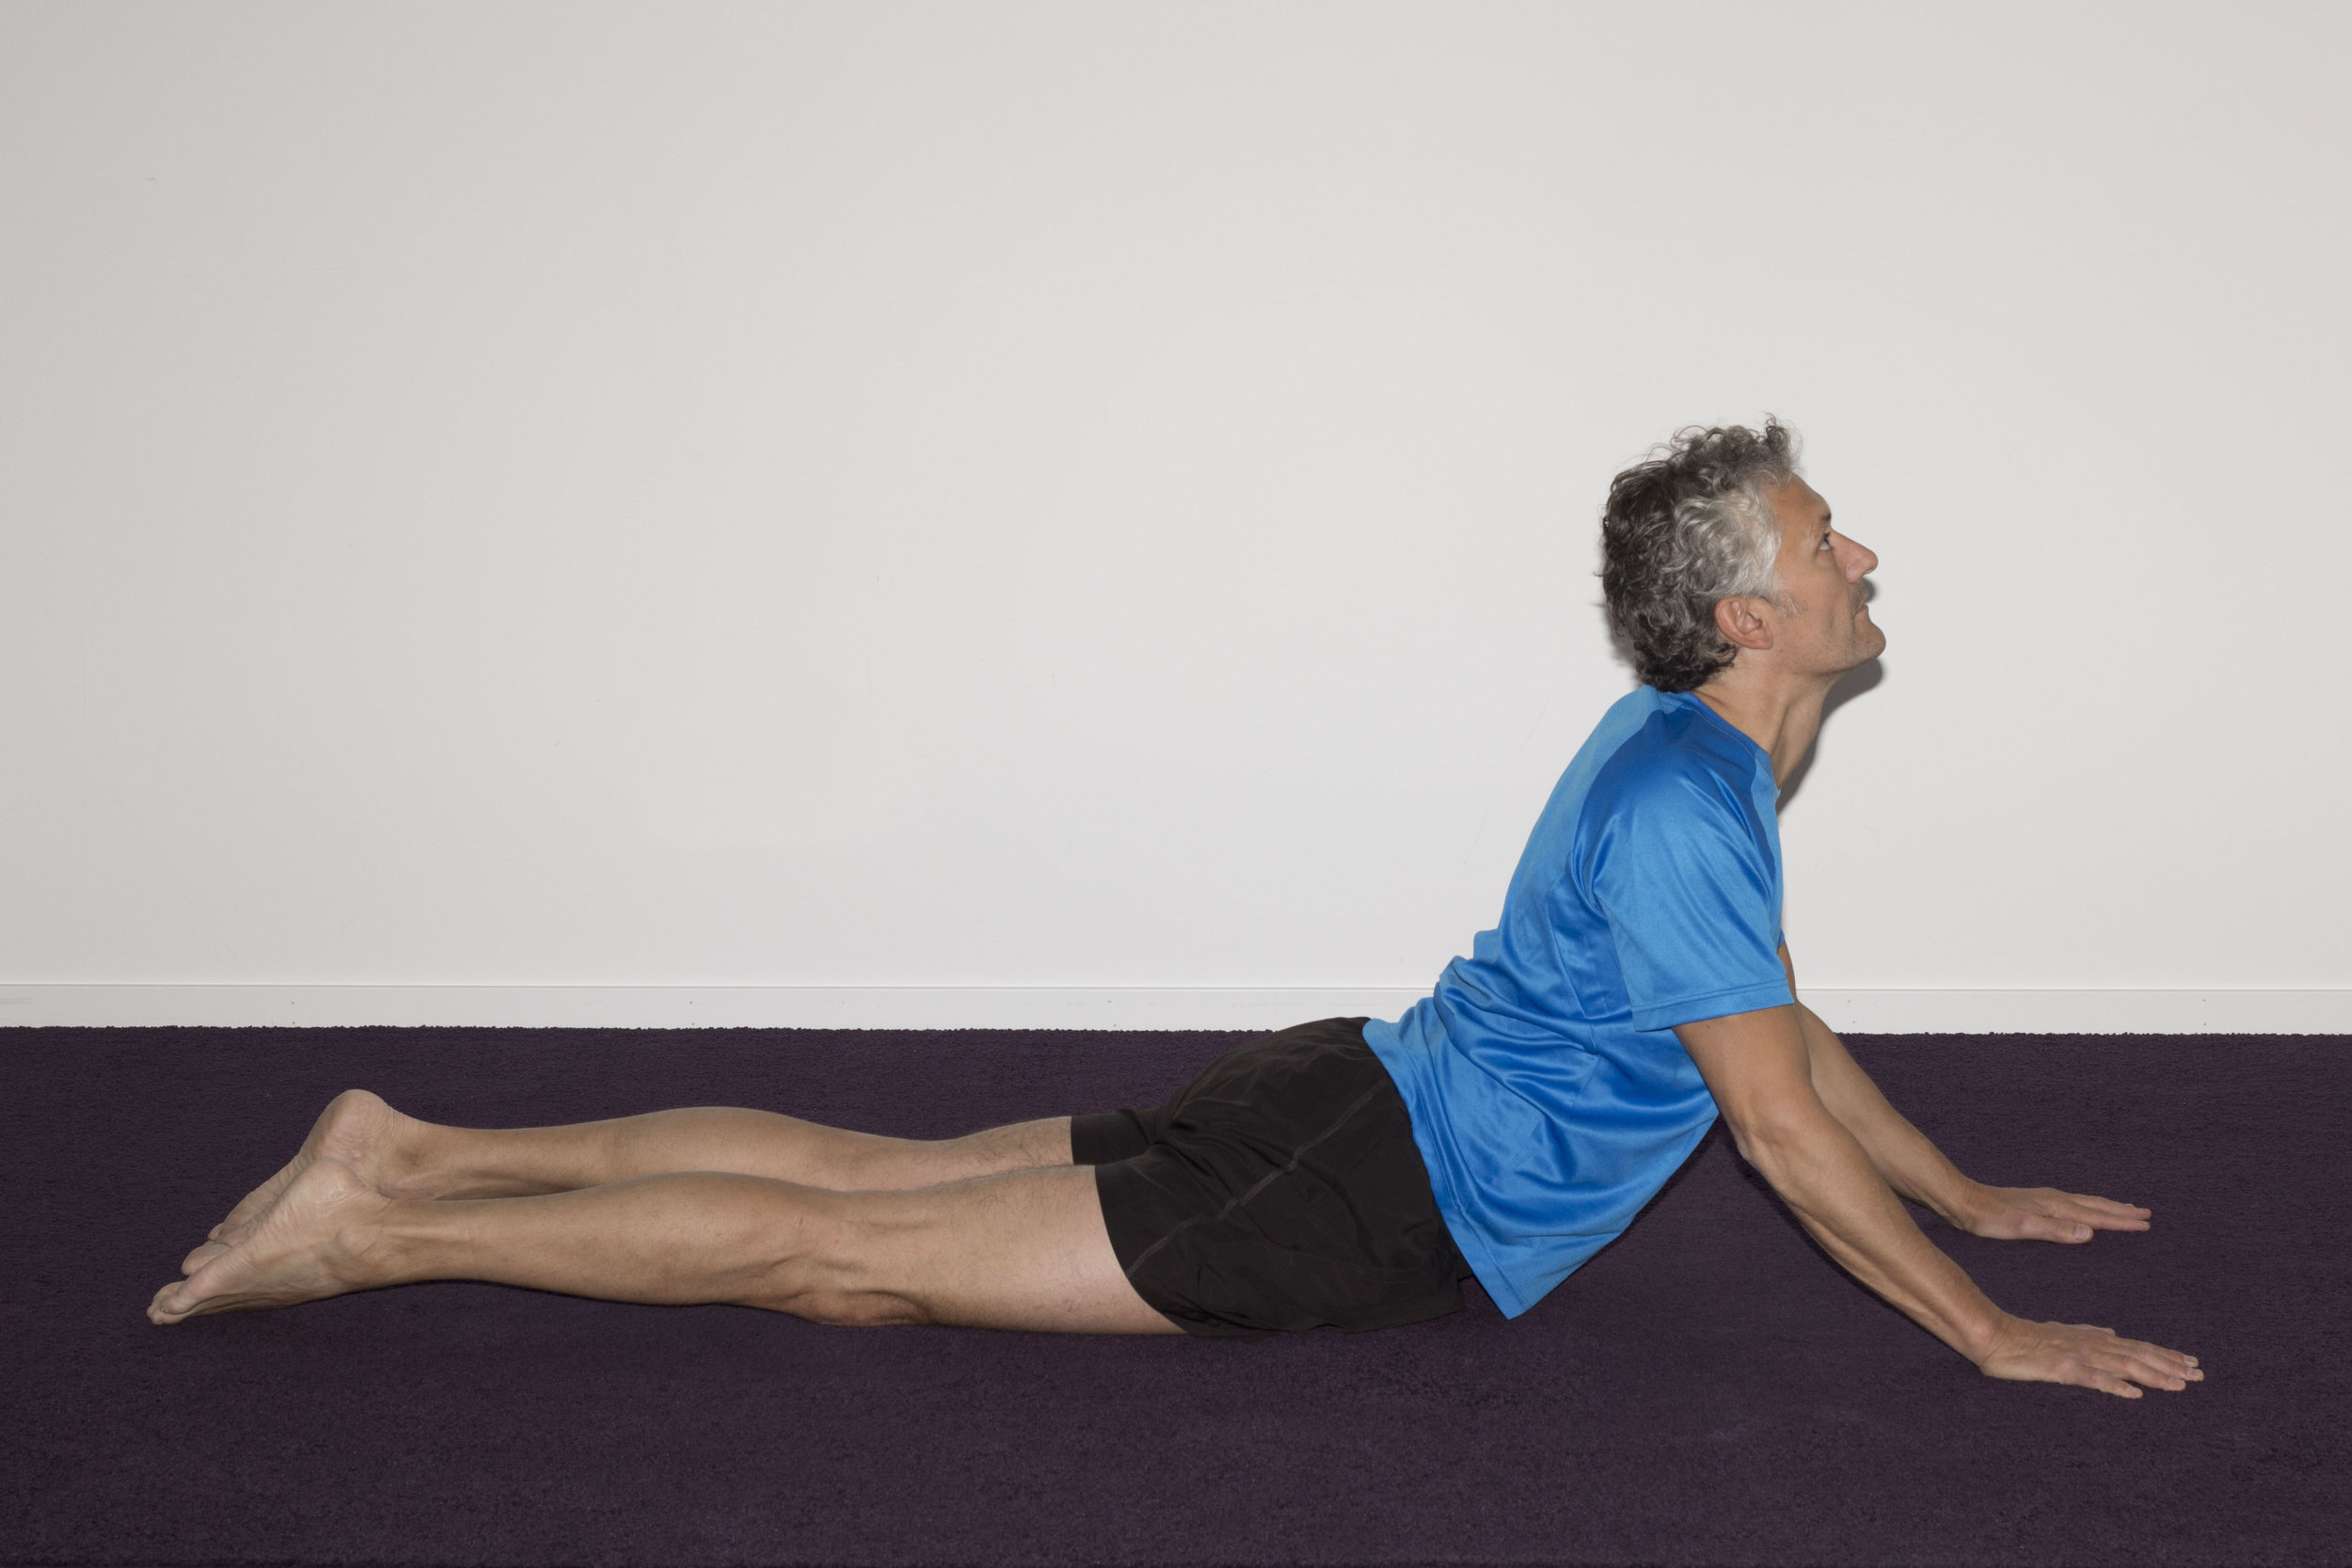 With hips and hands flat on the floor, raise the shoulders off the floor, and look up to the ceiling